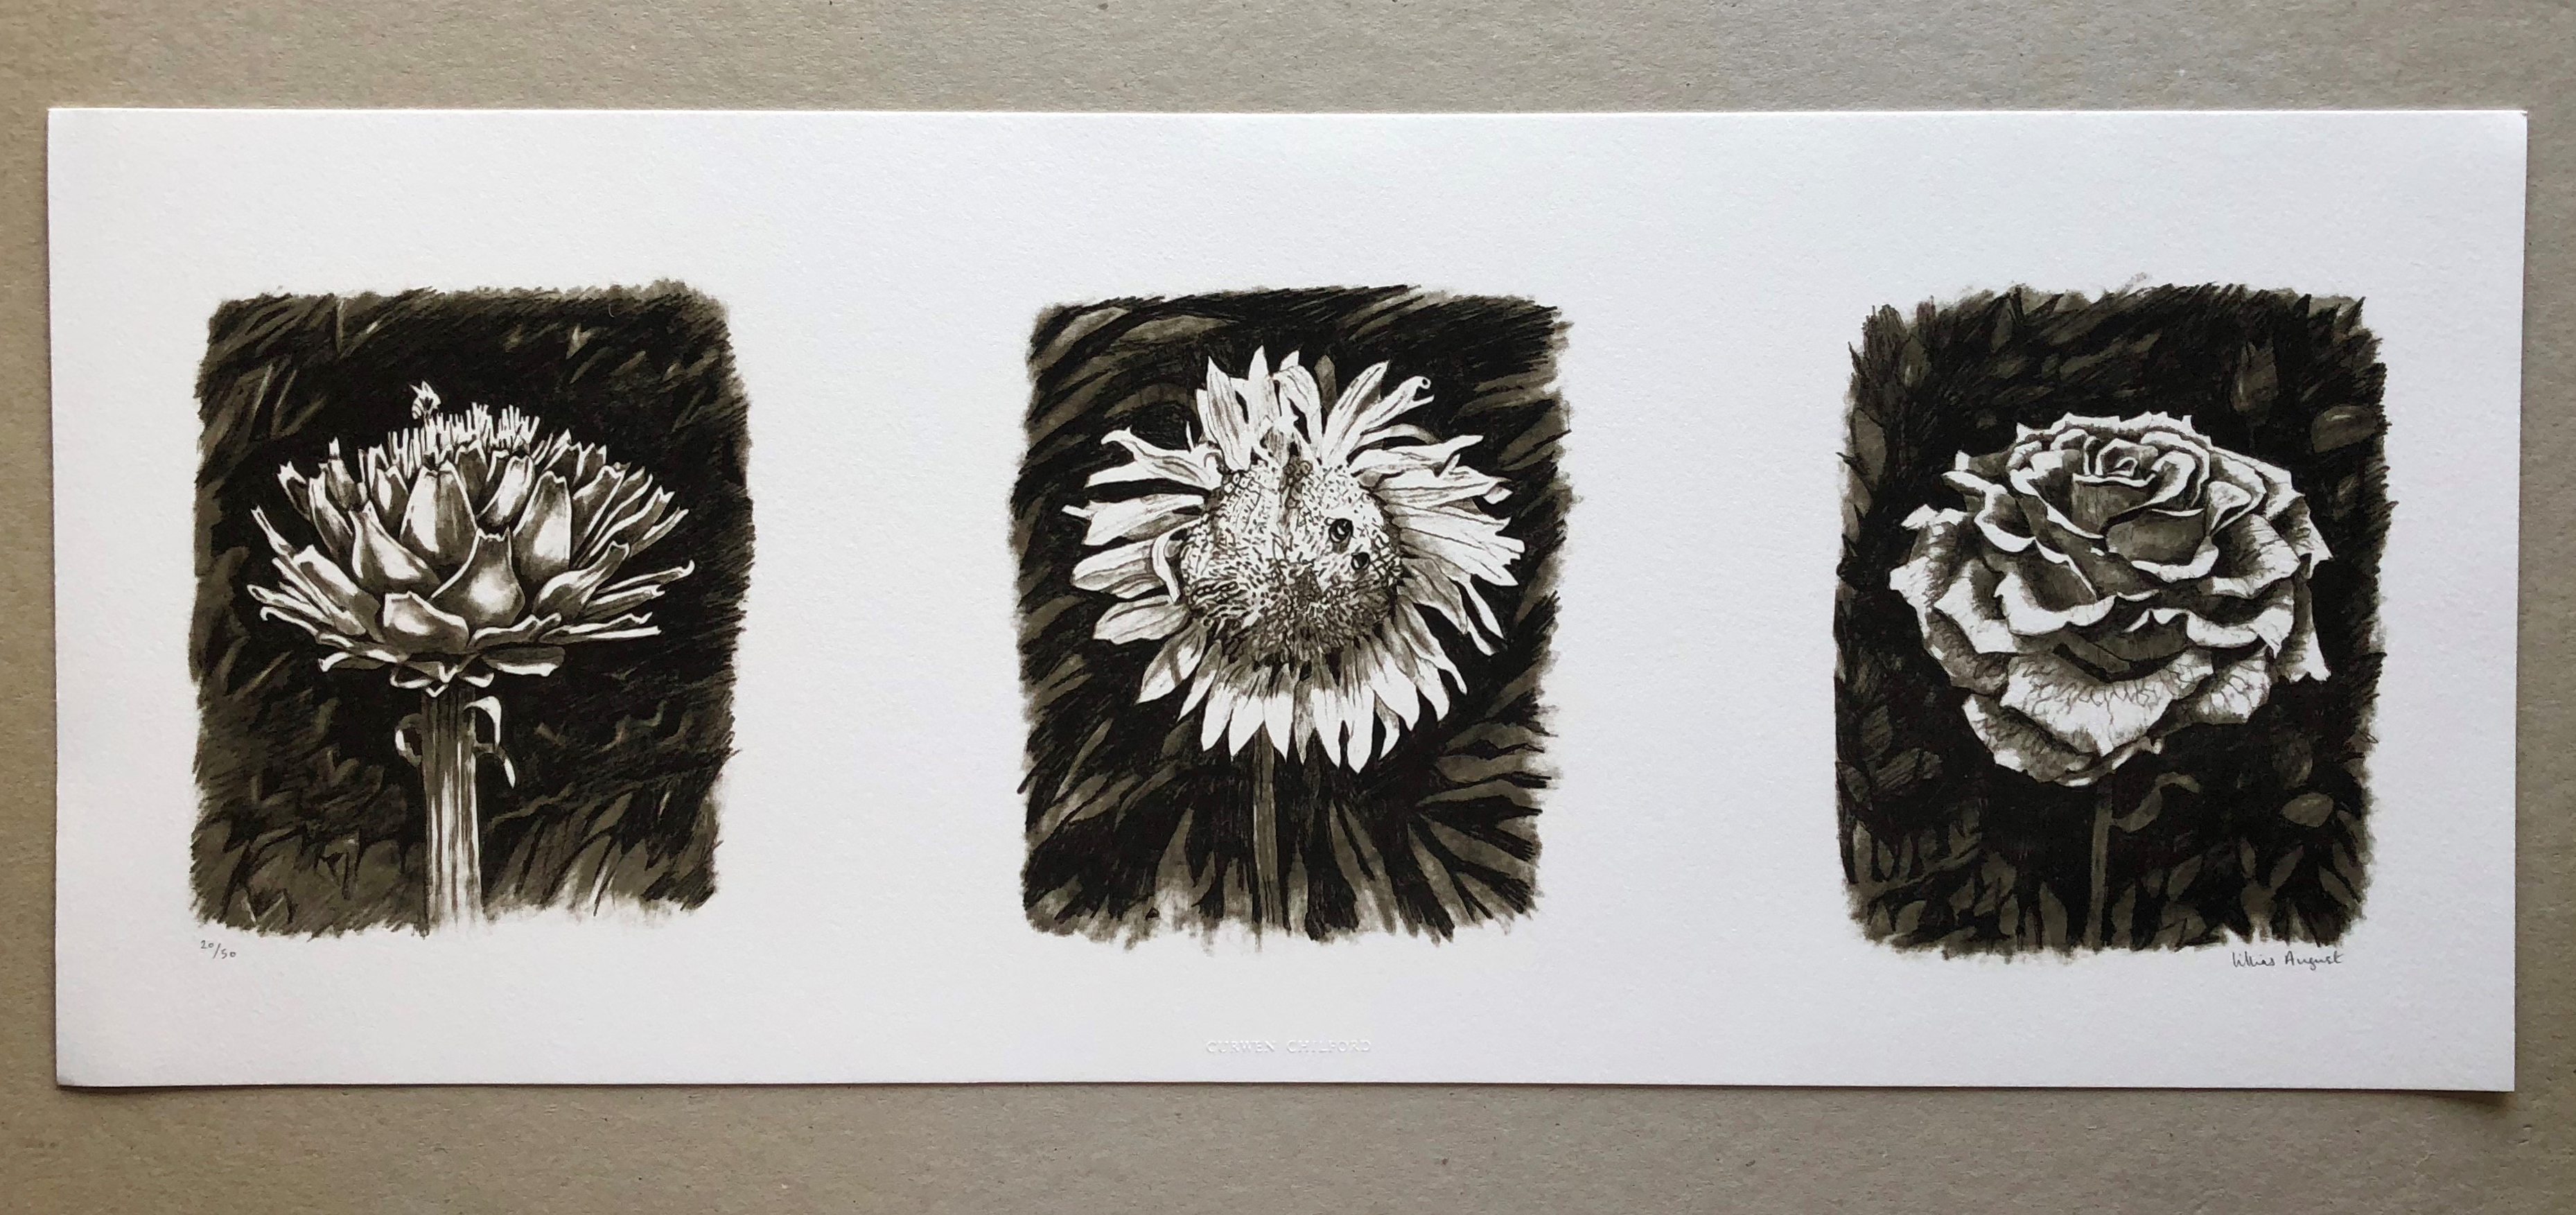 Artichoke, sunflower and rose, 16 x 56cm limited edition print